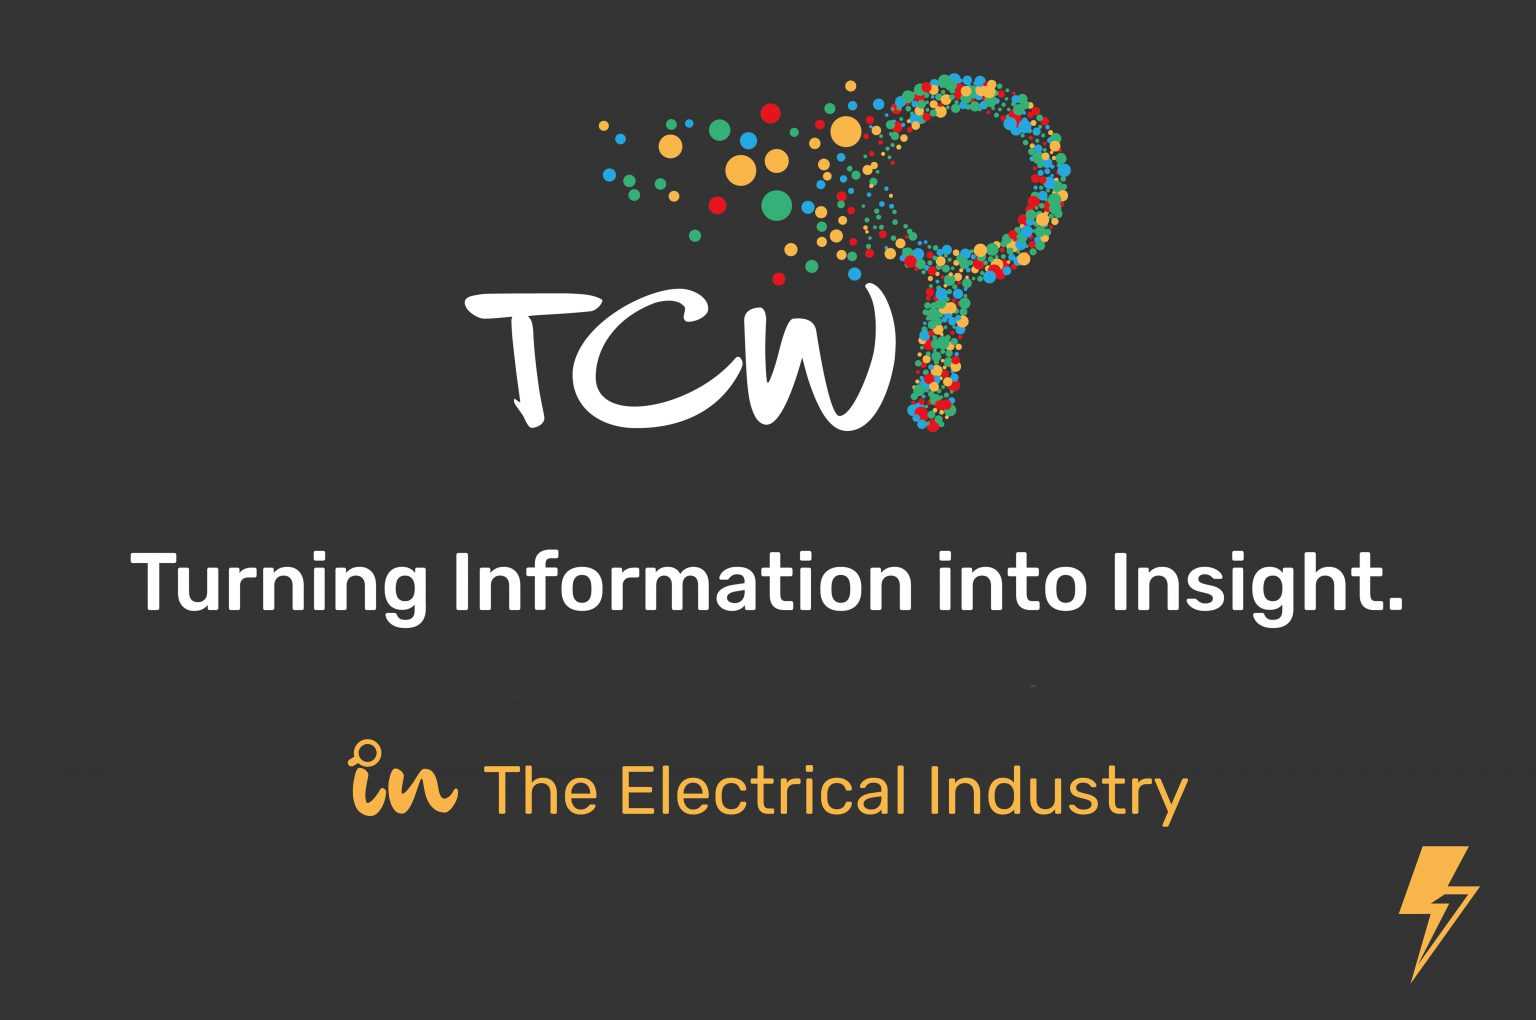 How can we improve the Electrical Industry?